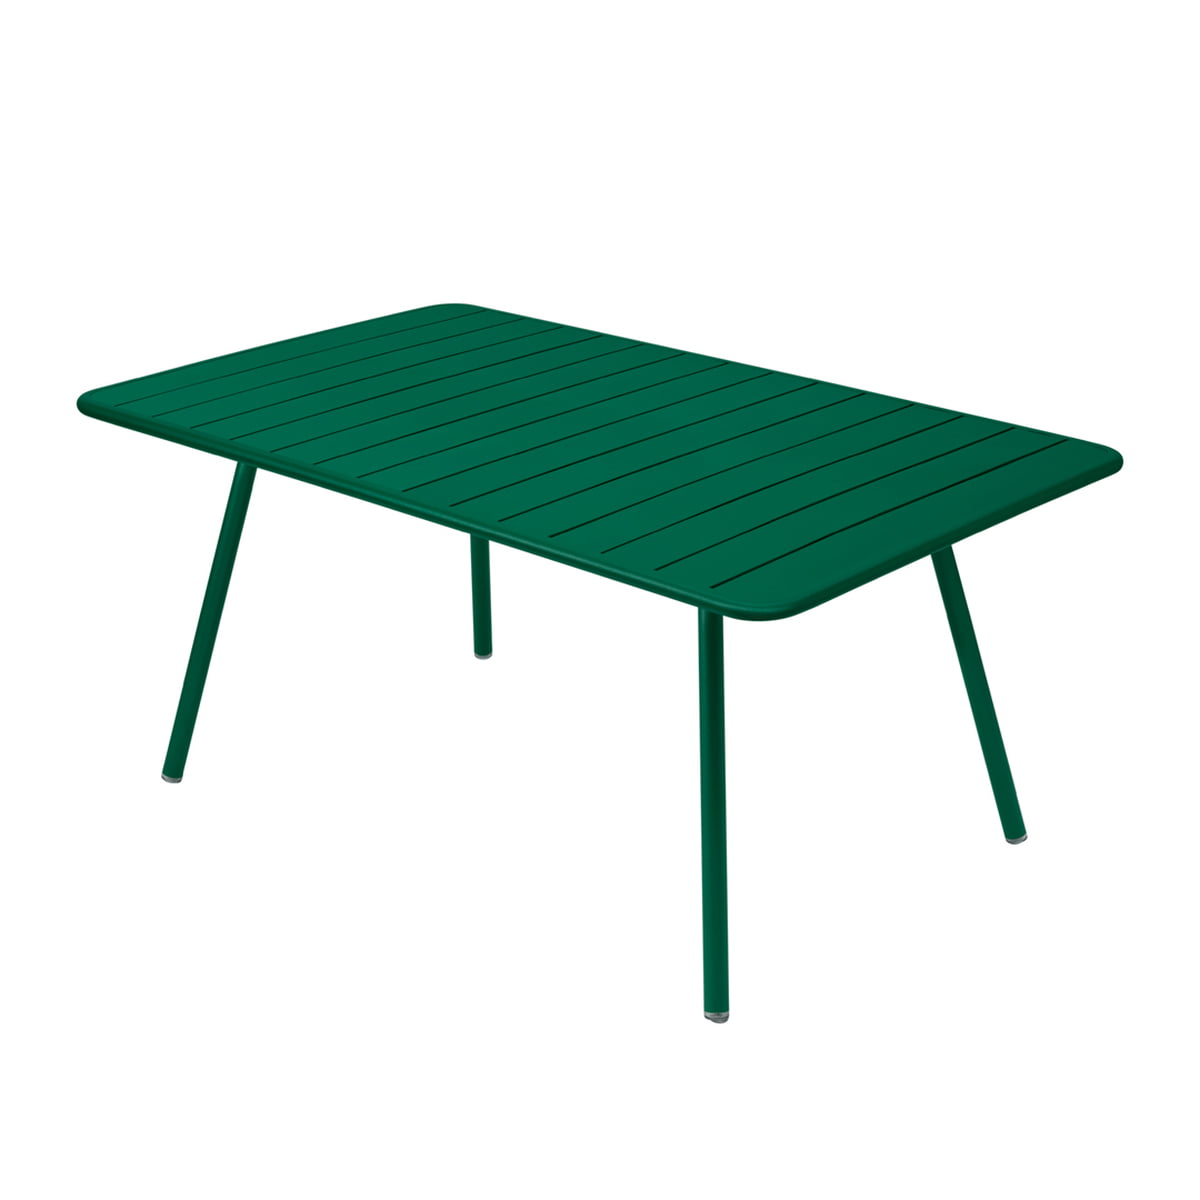 Rectangular luxembourg table by fermob for Fermob luxembourg table